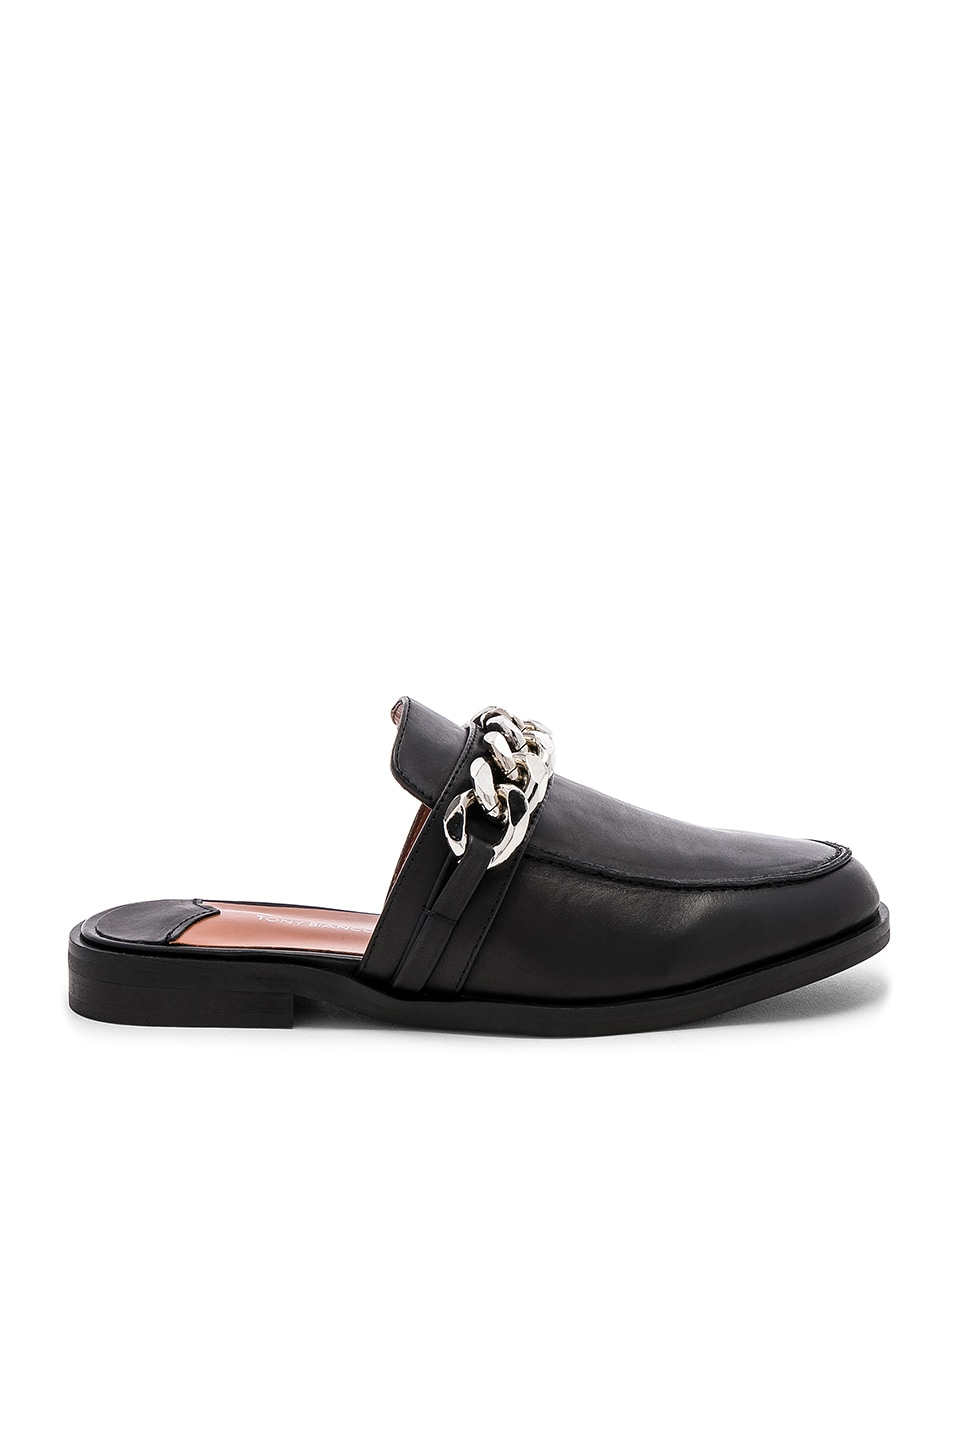 TONY BIANCO DION LOAFER